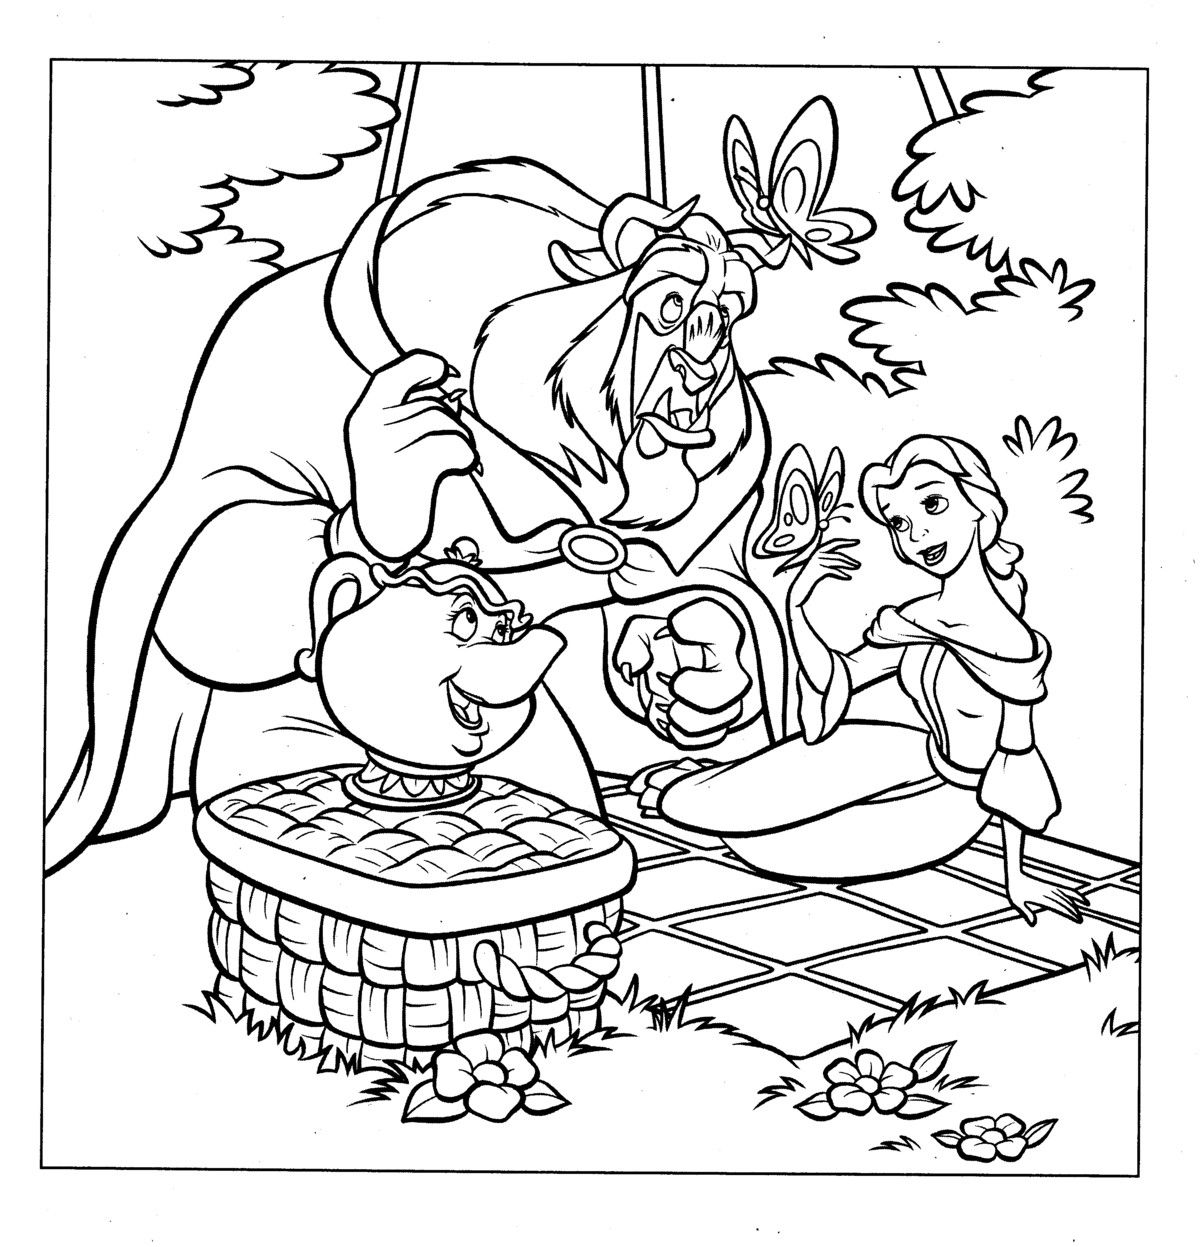 Free printable coloring pages uk - Disney Princess Uk Colouring Fun Activities Amp More Princess Coloring Pages Print Pictures